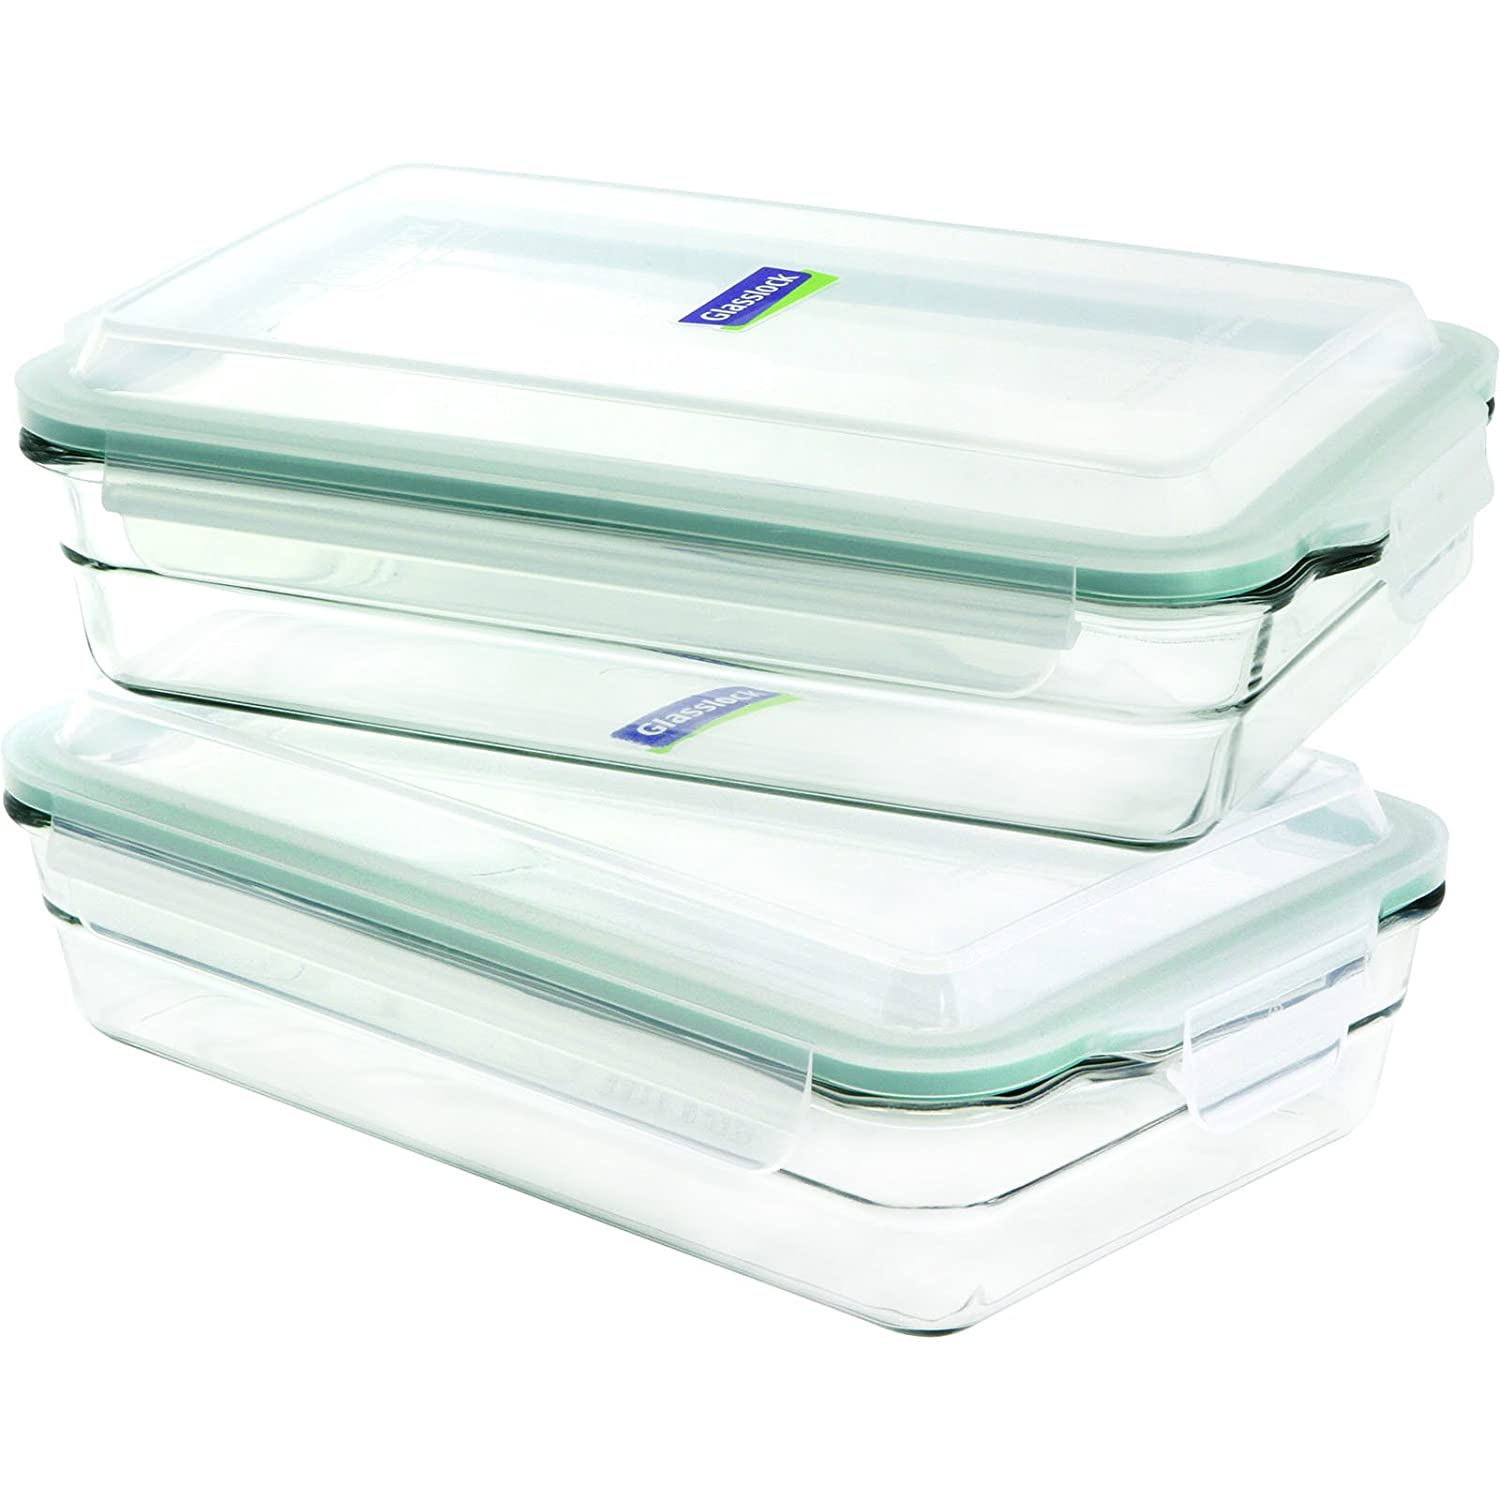 Glasslock 4-Piece Oven Safe Bakeware Rectangle Set, 6.5 x 10.5 inch 11362